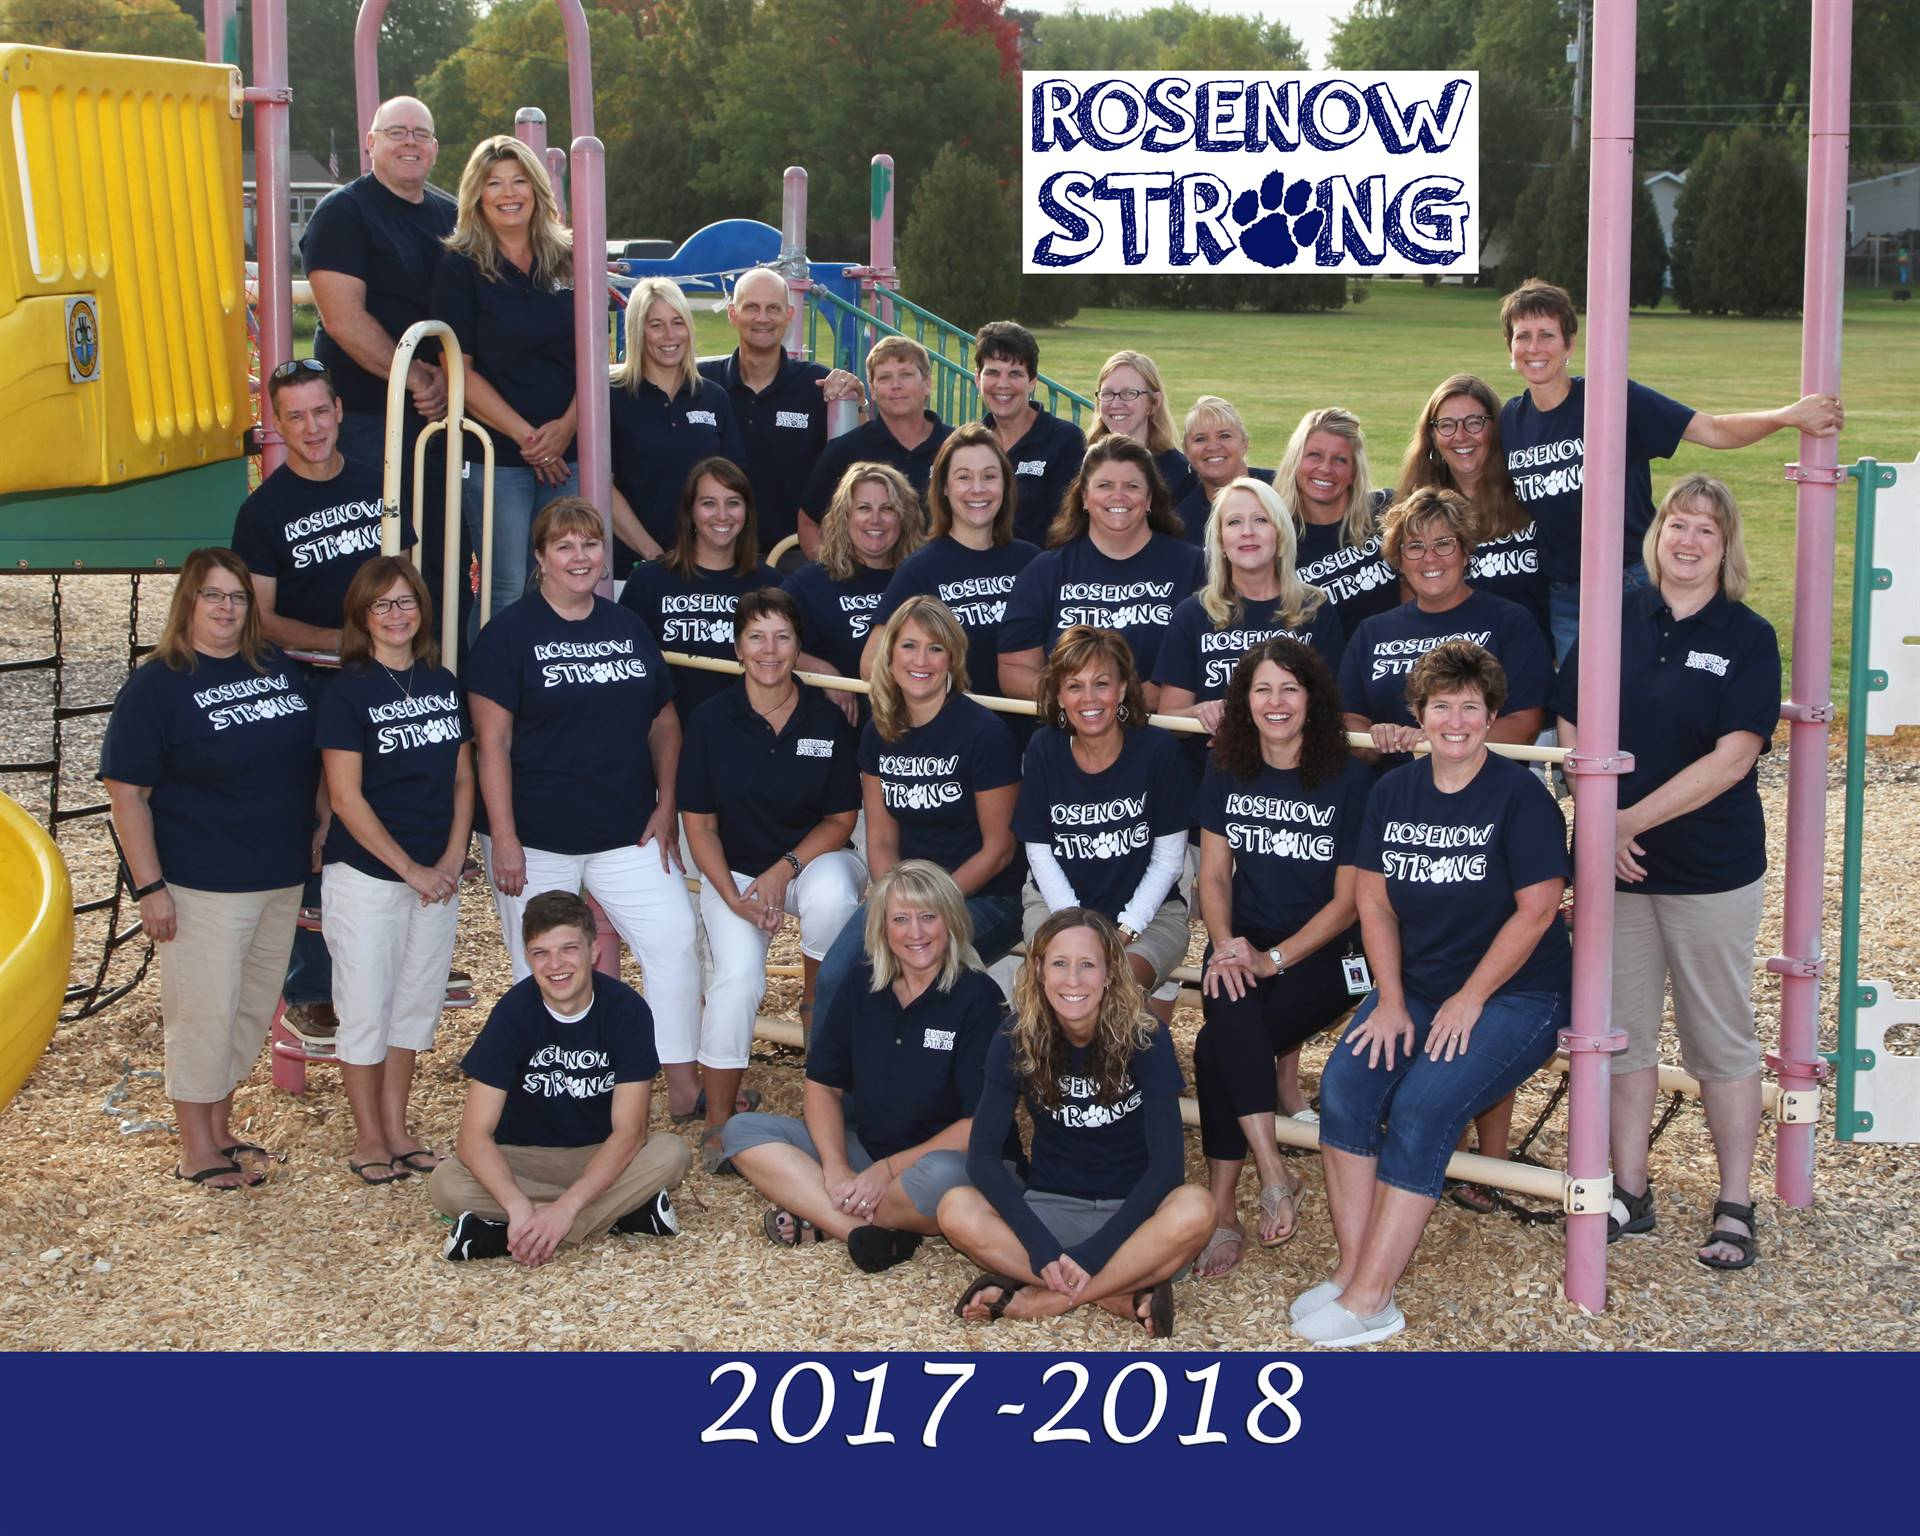 Our Staff is Rosenow Strong